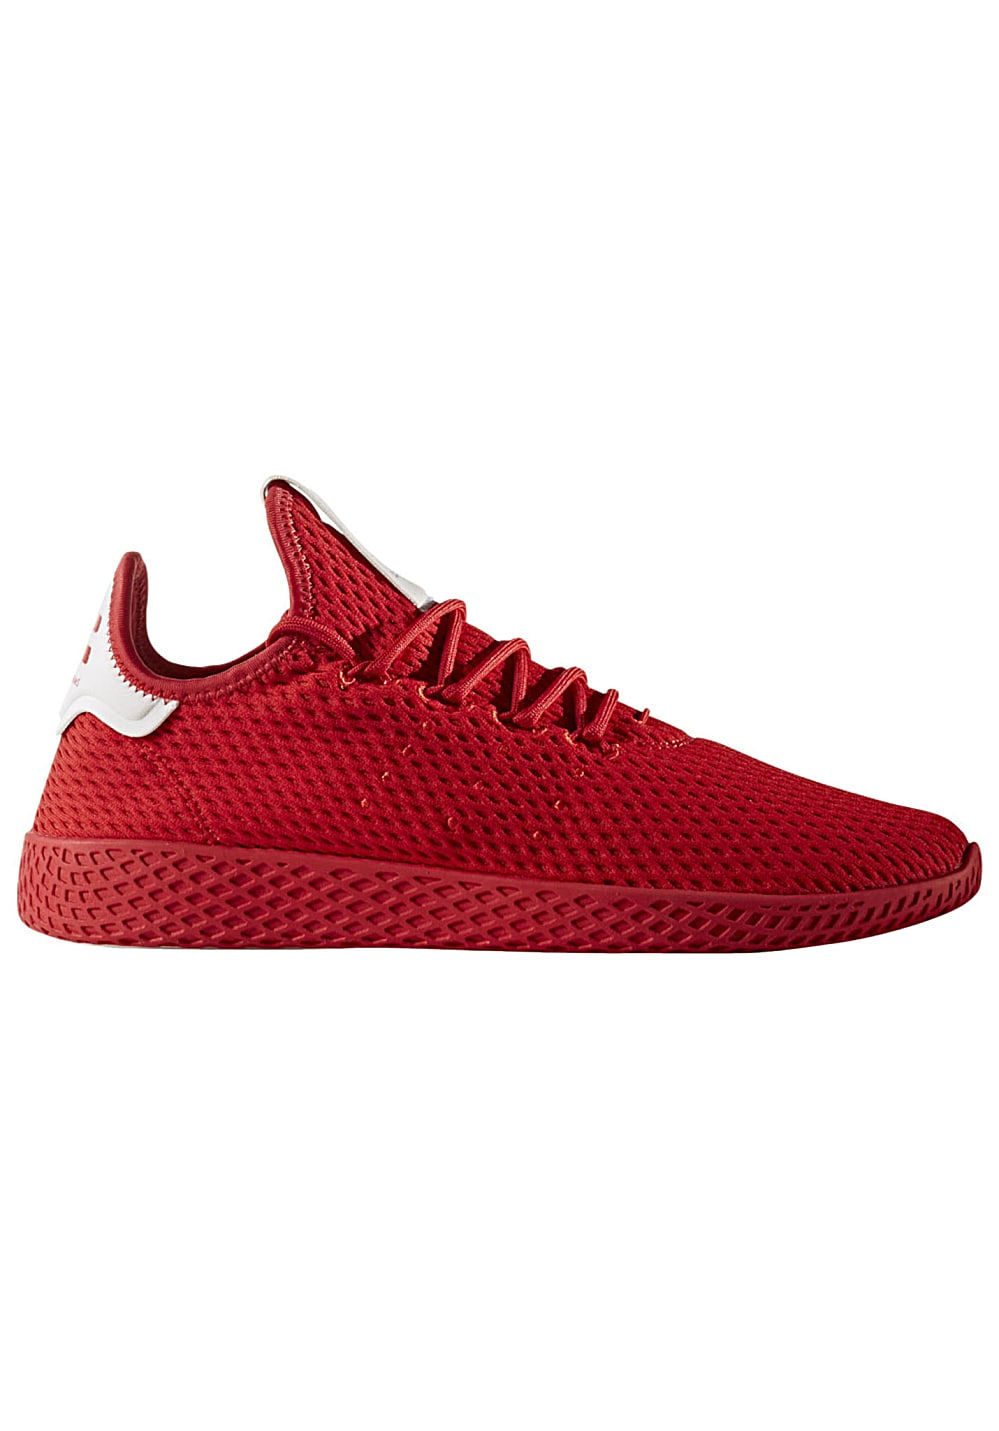 pharrell williams adidas schuhe herren braun